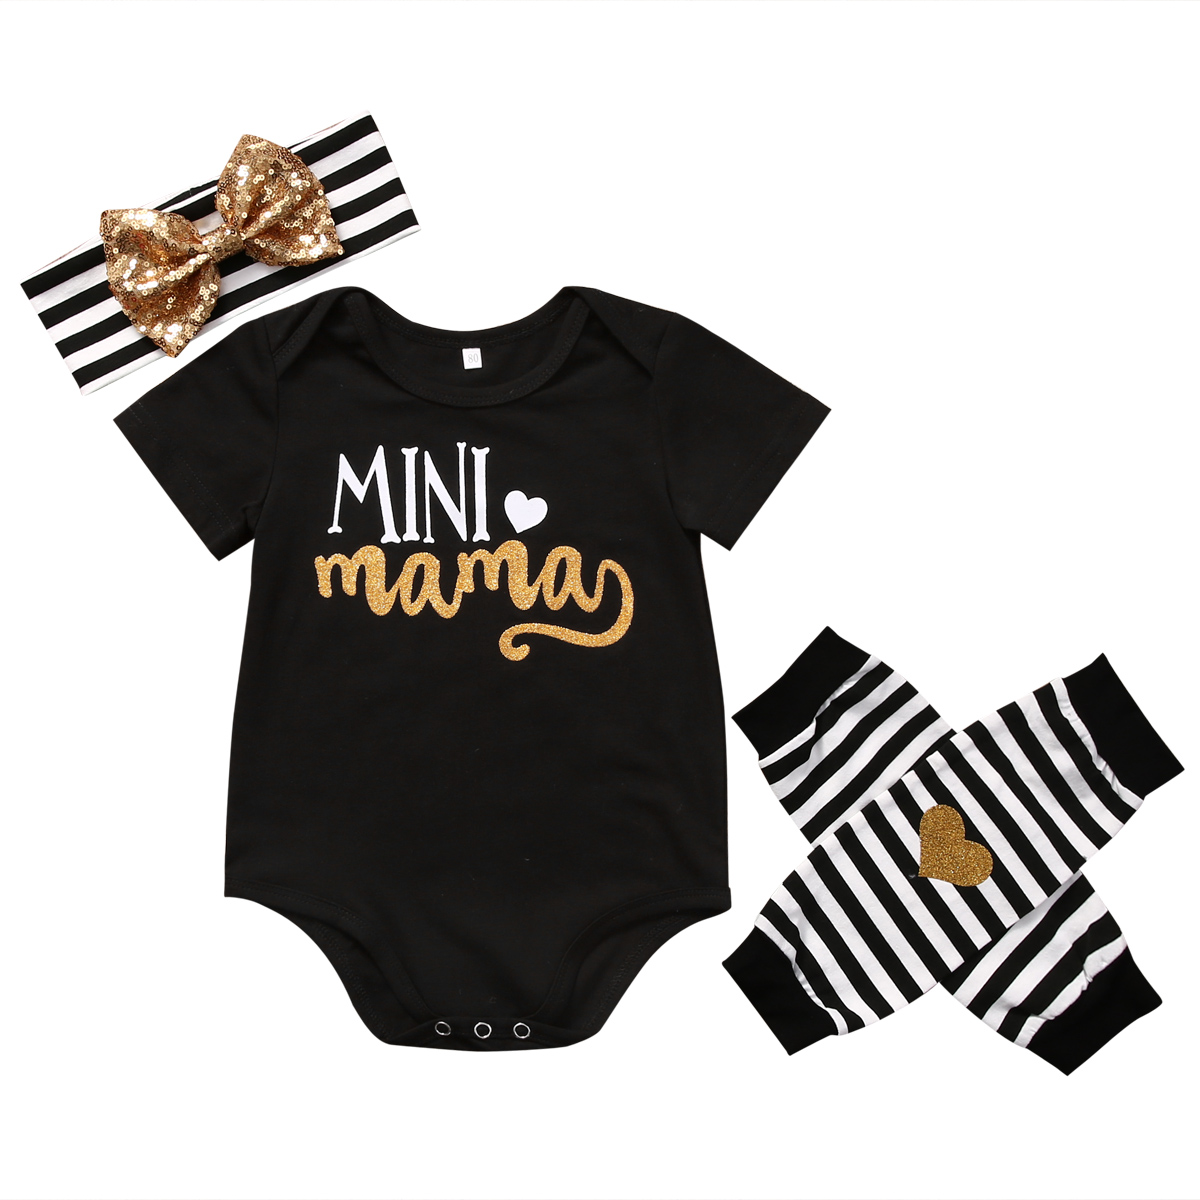 4PCS Set Newborn Baby Clothes Infant Bebes Short Sleeve Mini Mama Bodysuit Romper Headband Gold Heart Striped Leg Warmer Outfit baby boy clothes kids bodysuit infant coverall newborn romper short sleeve polo shirt cotton children costume outfit suit